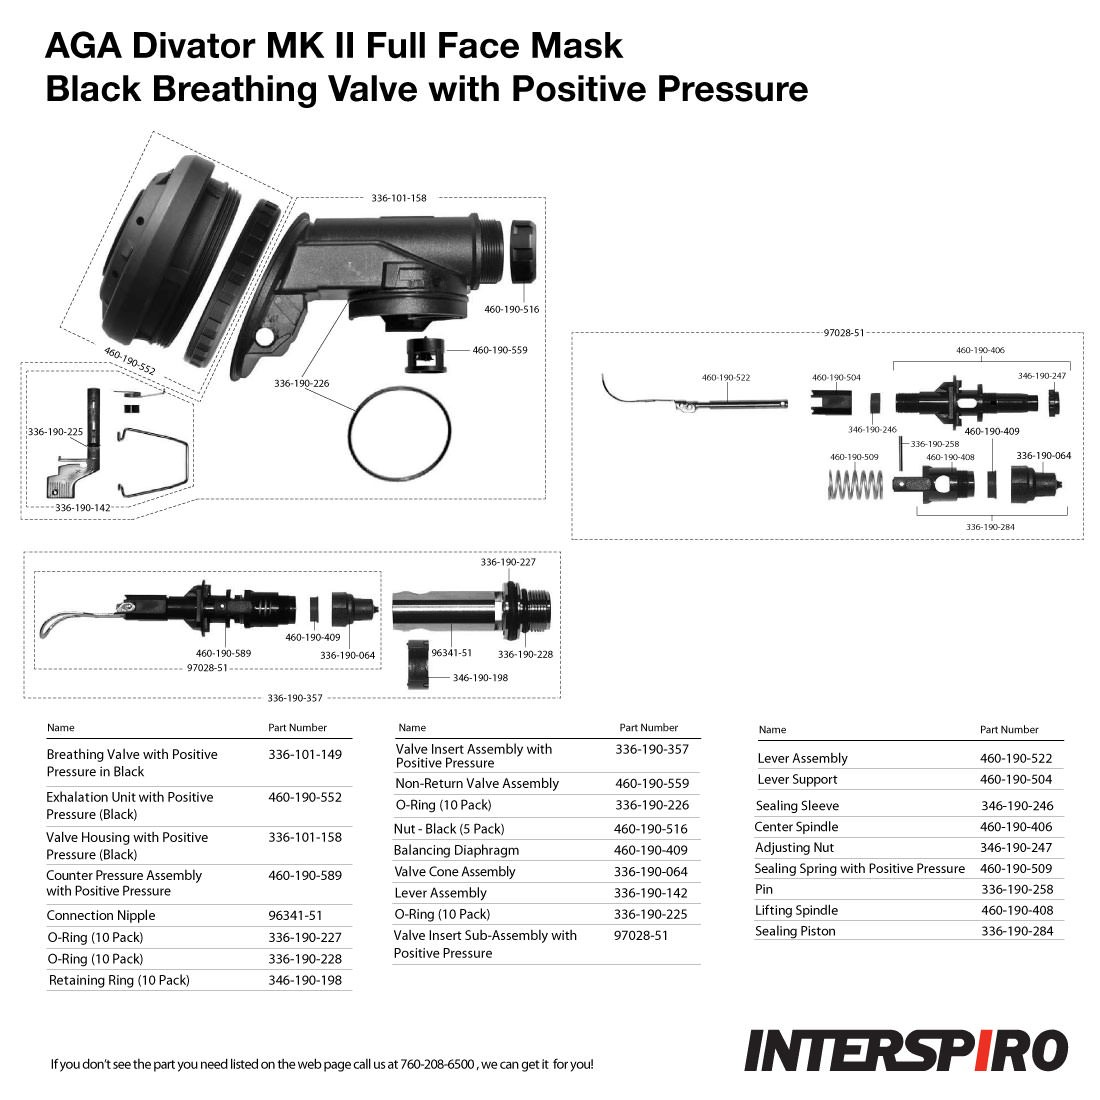 Interspiro AGA Divator MK II Full Face Mask with Positive Pressure Regulator - Silicone - Black - Breathing Valve